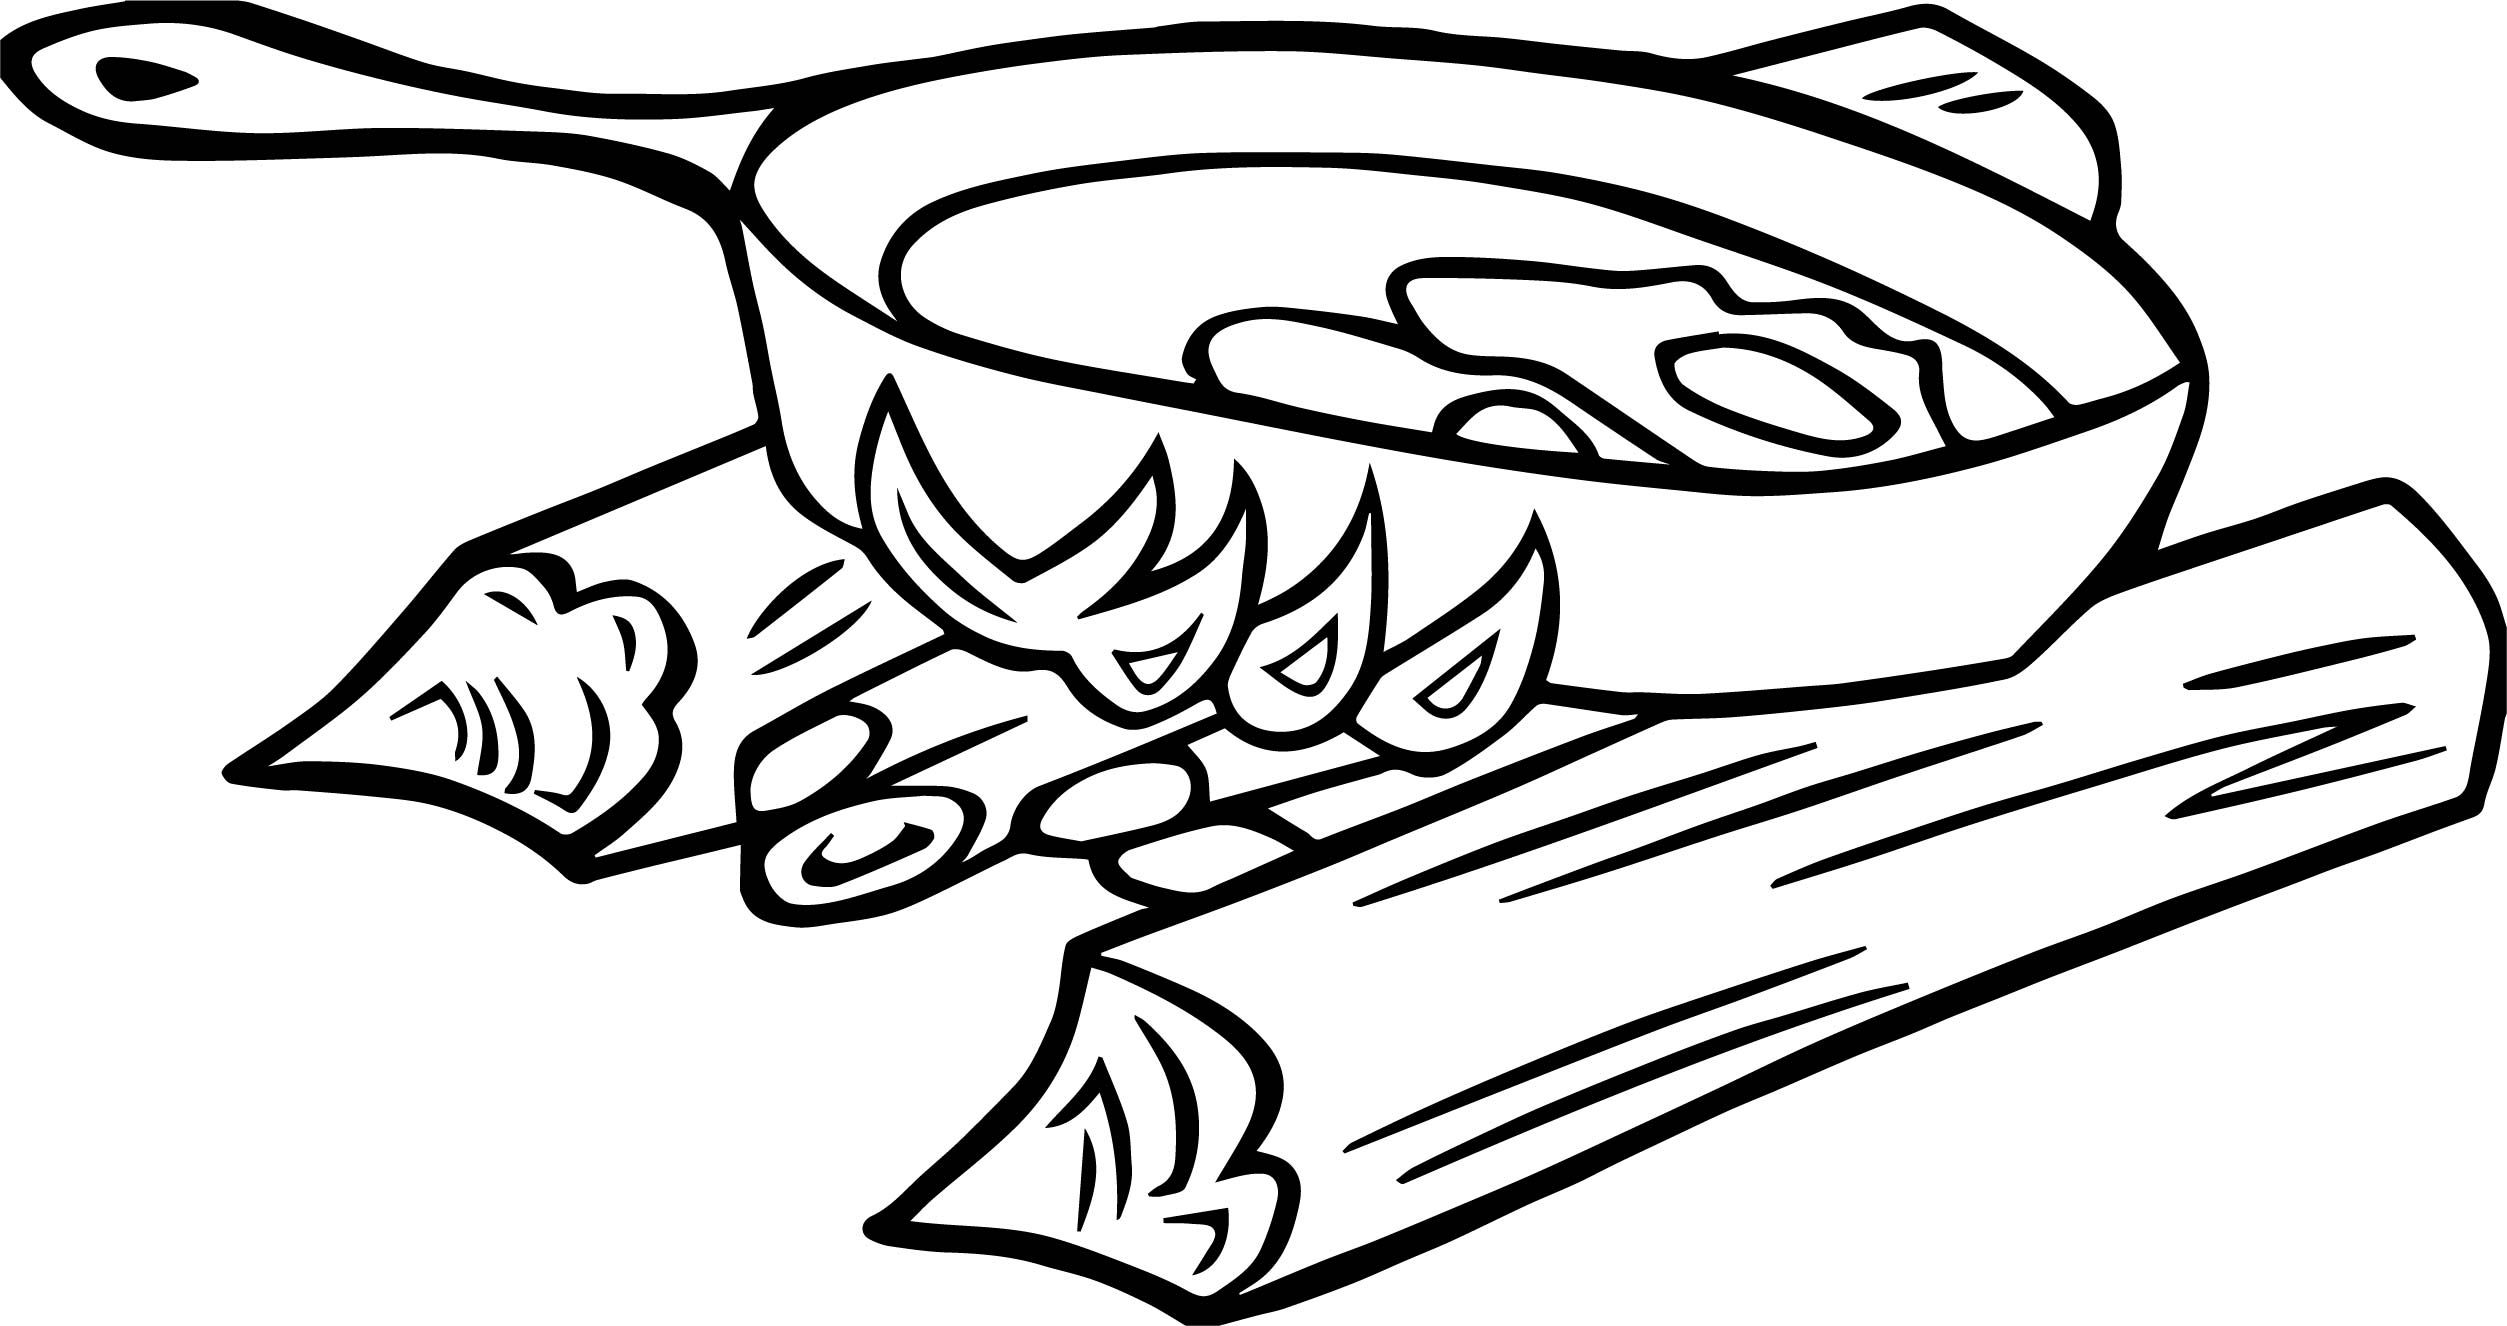 Awesome Campfire Cooking Camping Egg Food Coloring Page Food Coloring Pages Thanksgiving Coloring Pages Coloring Pages [ 1326 x 2507 Pixel ]